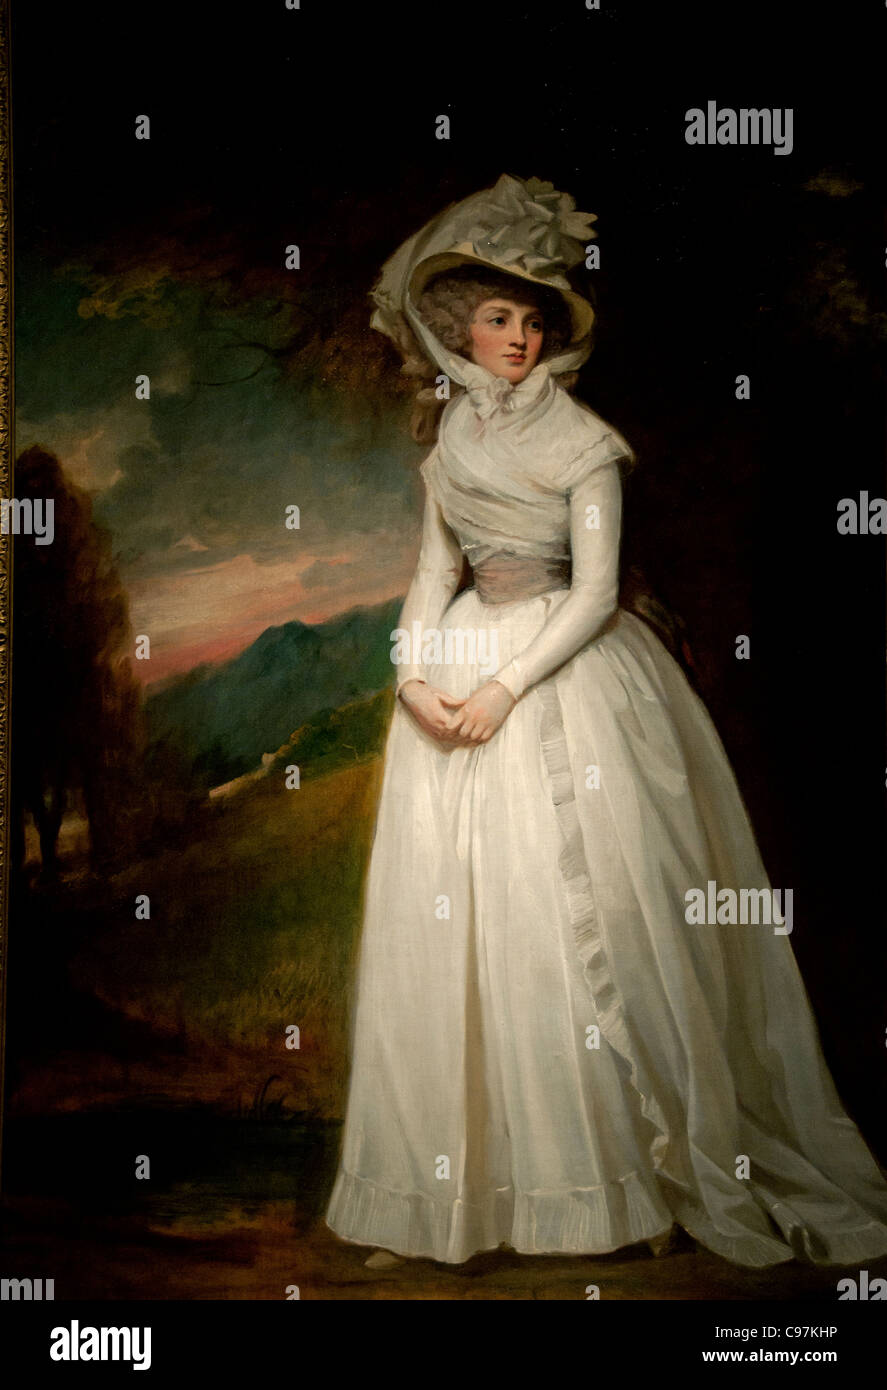 Penelope Lee Acton 1791 by George Romney British - Stock Image